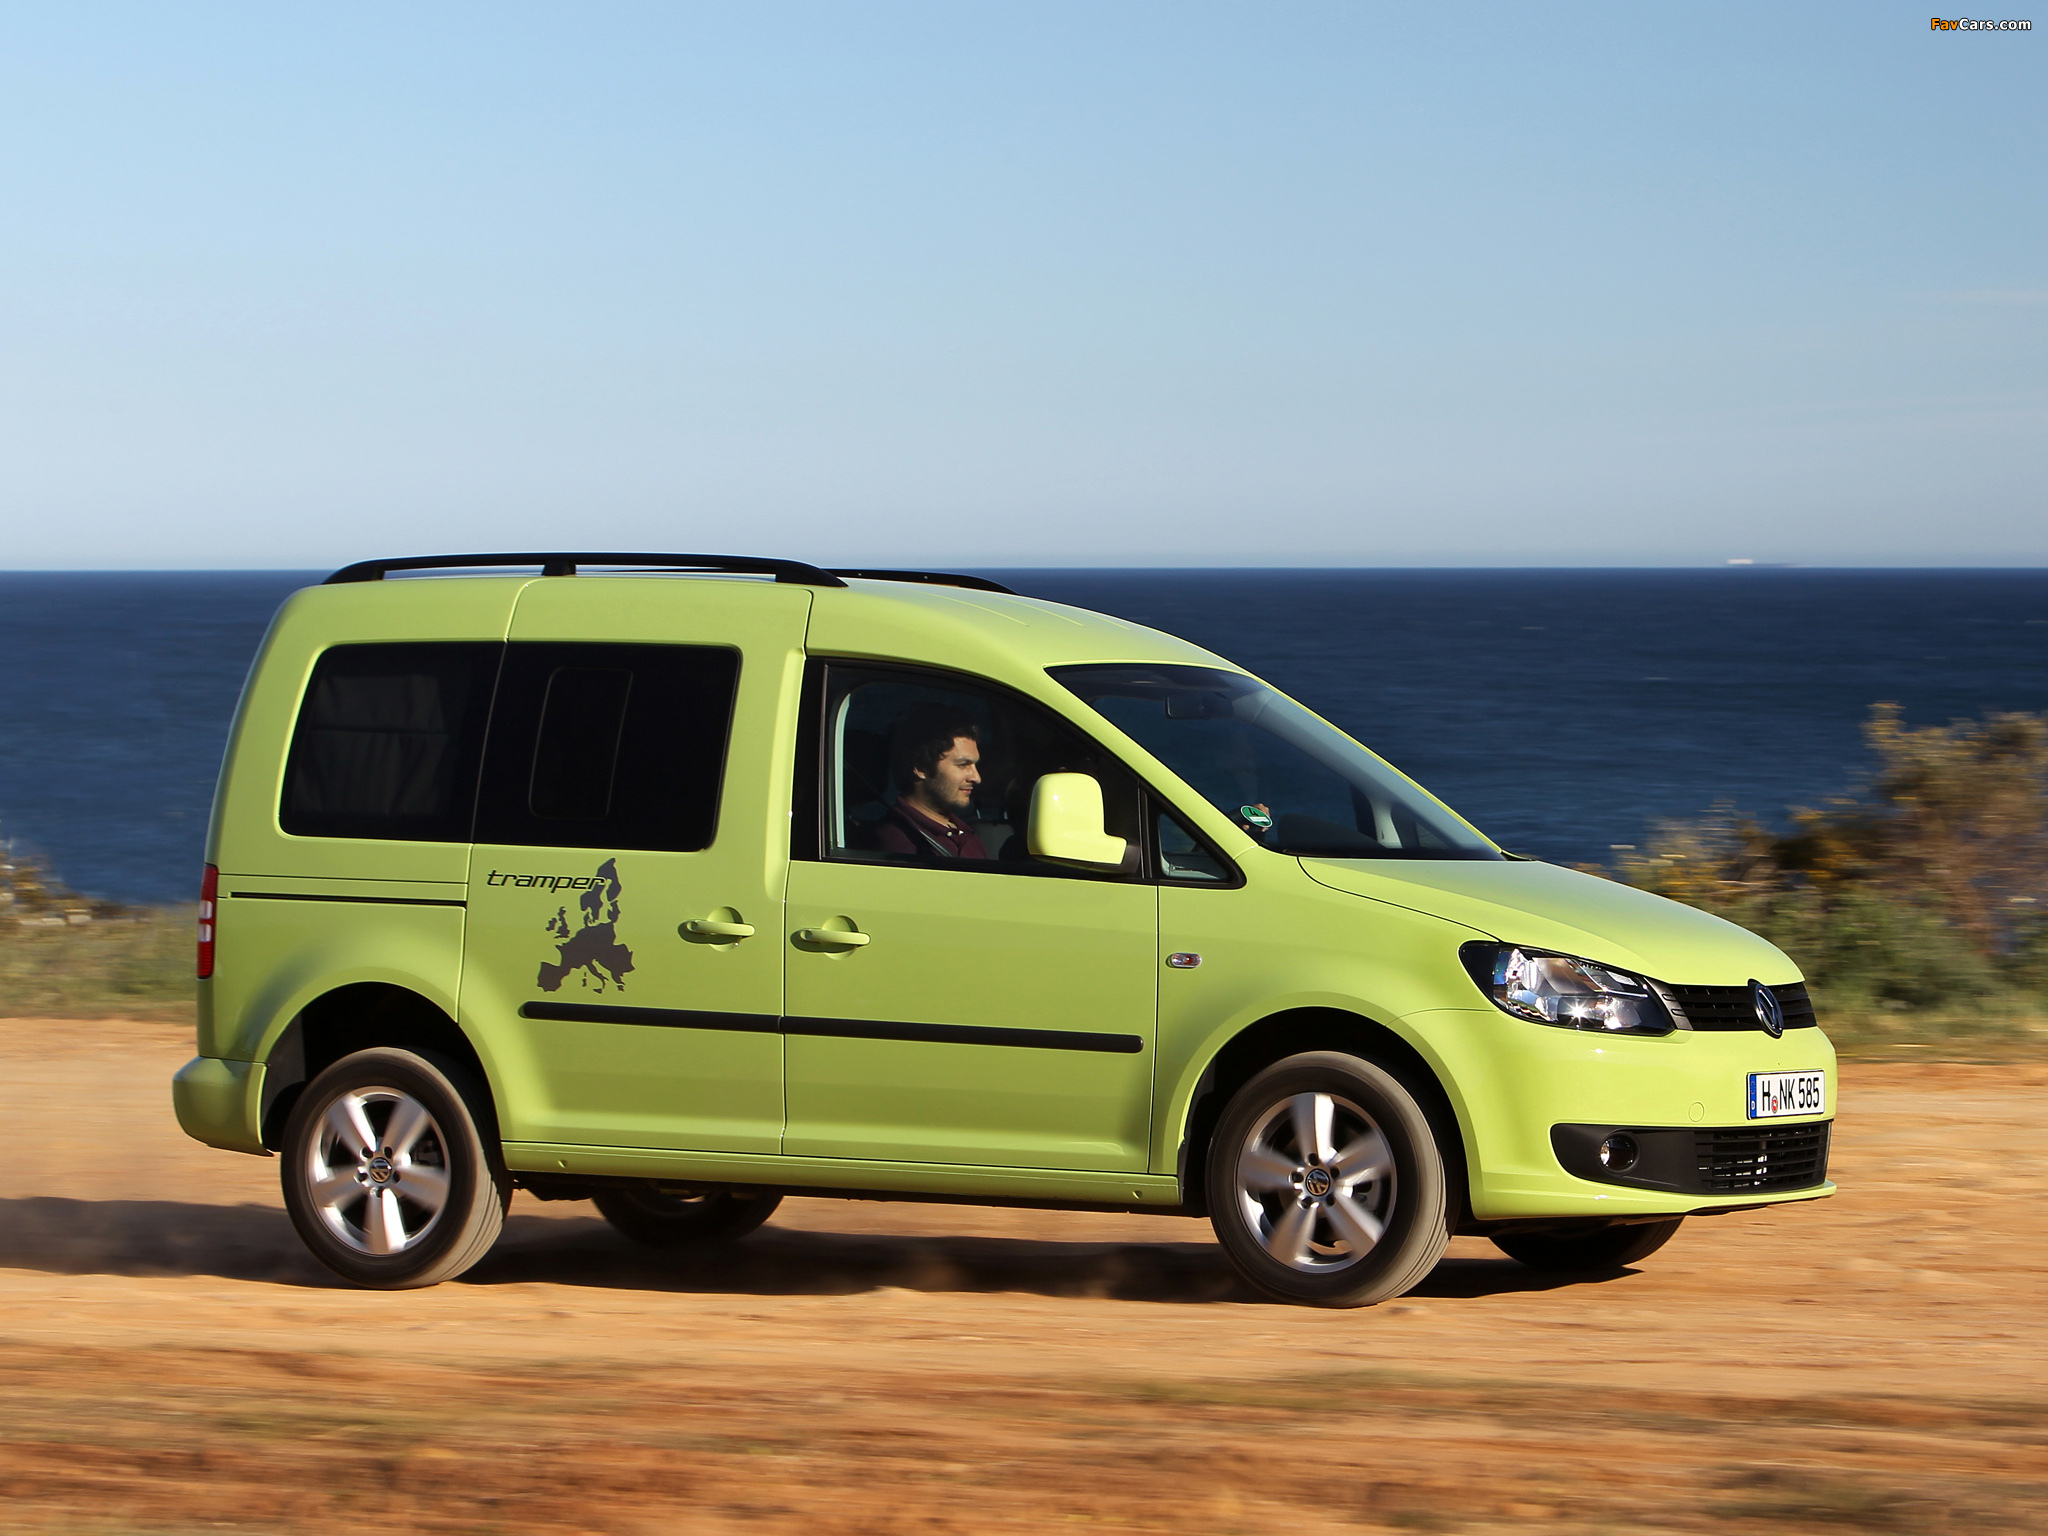 volkswagen caddy tramper type 2k 2010 wallpapers 2048x1536. Black Bedroom Furniture Sets. Home Design Ideas